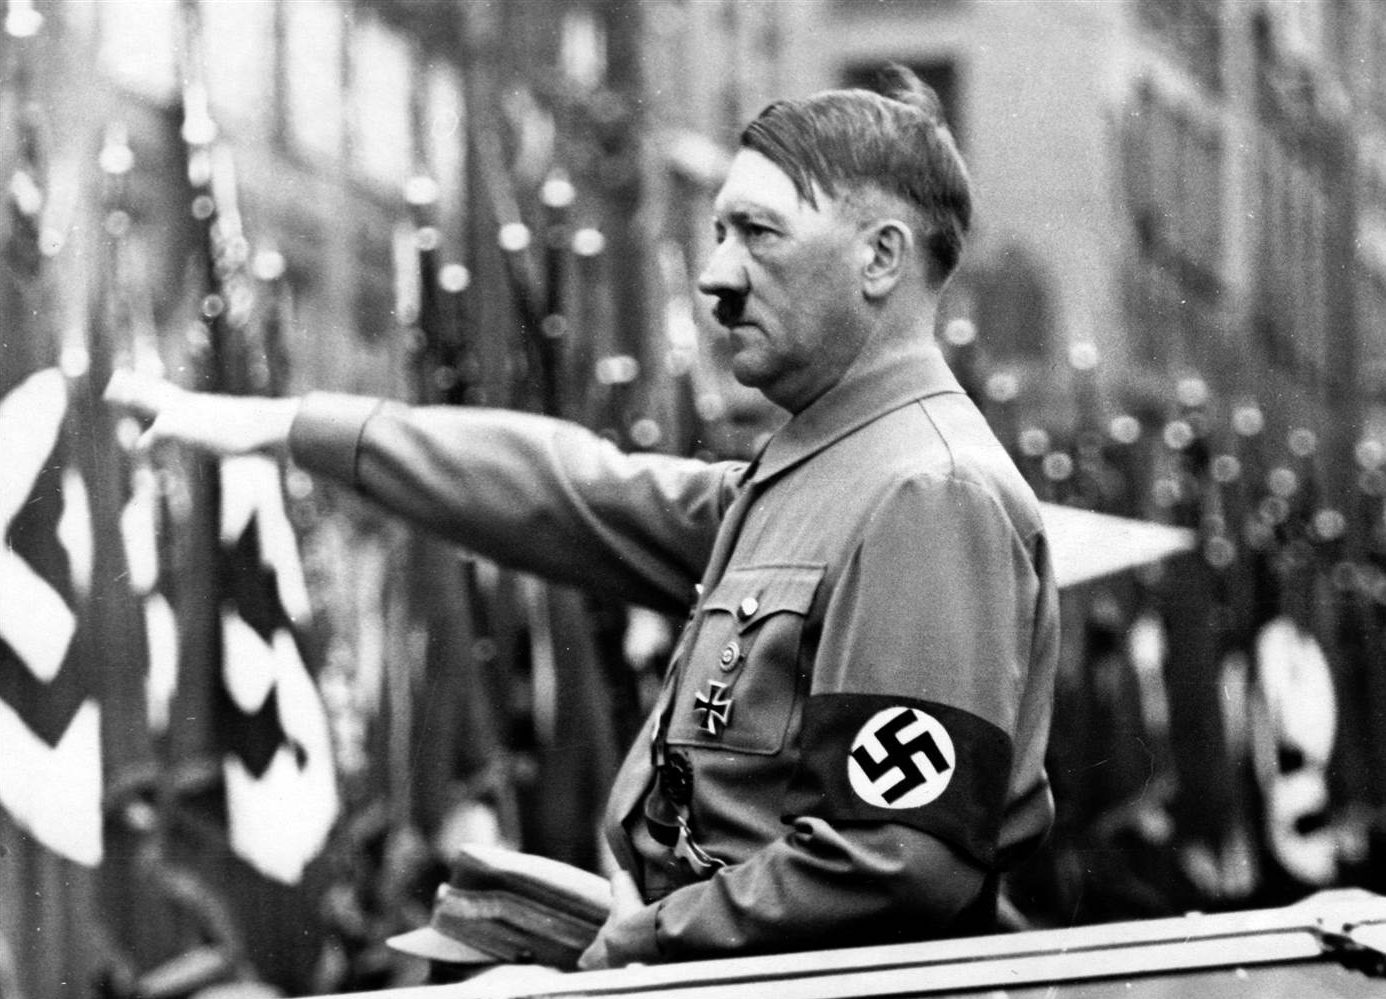 adolf hitler and the nazis rise Hitler web sites lesson plans, activities, and more hitler web sites bbc: the rise of adolf hitler and the nazis a moderately sized and very readable summary of the growth and formation of hitler's career and the nazi party.